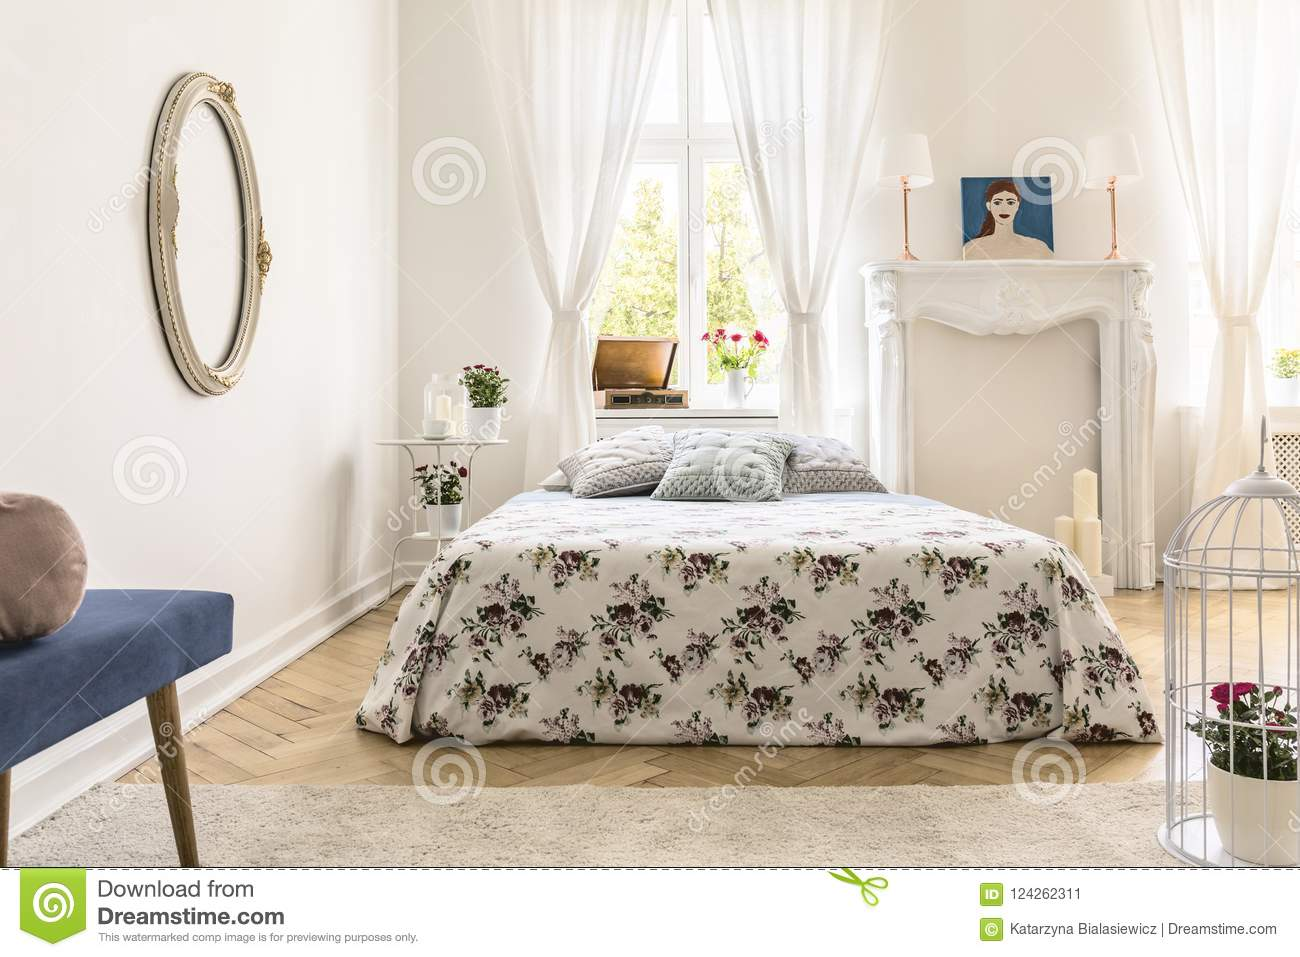 Real Photo Of English Style Bedroom Interior With King-size Bed